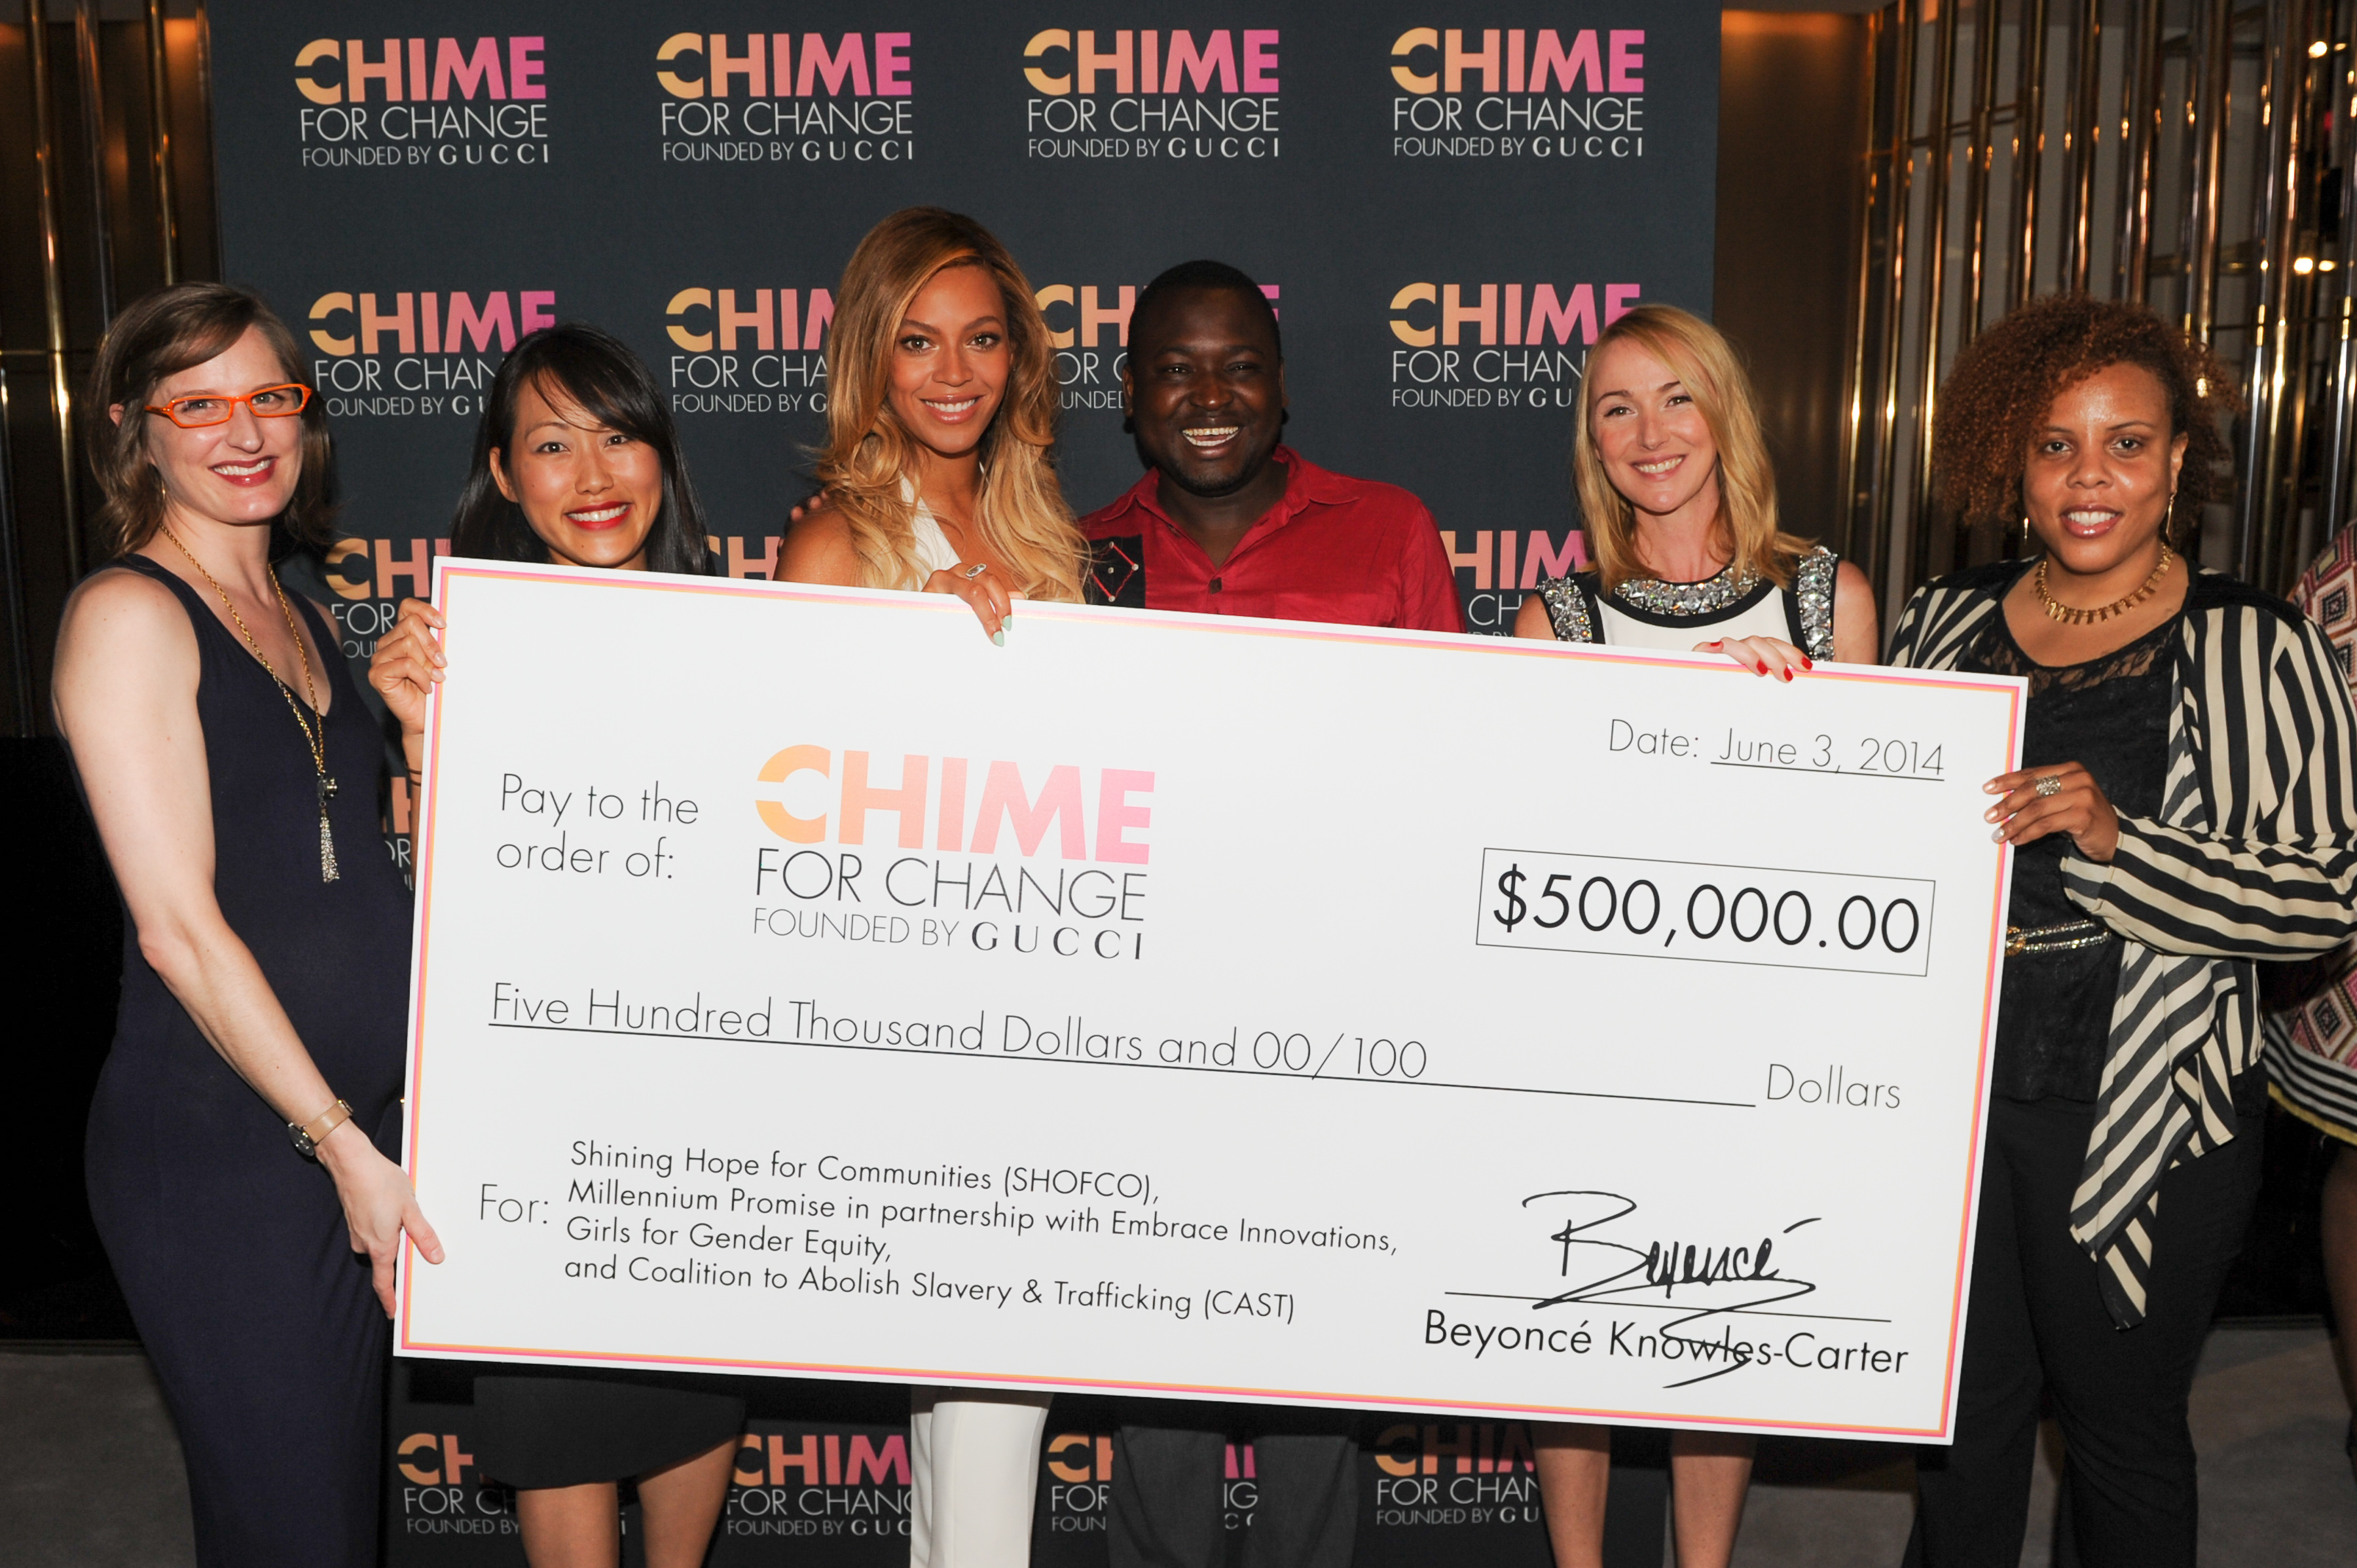 Charitable Contribution Beyonce Opens Wallet For Chime